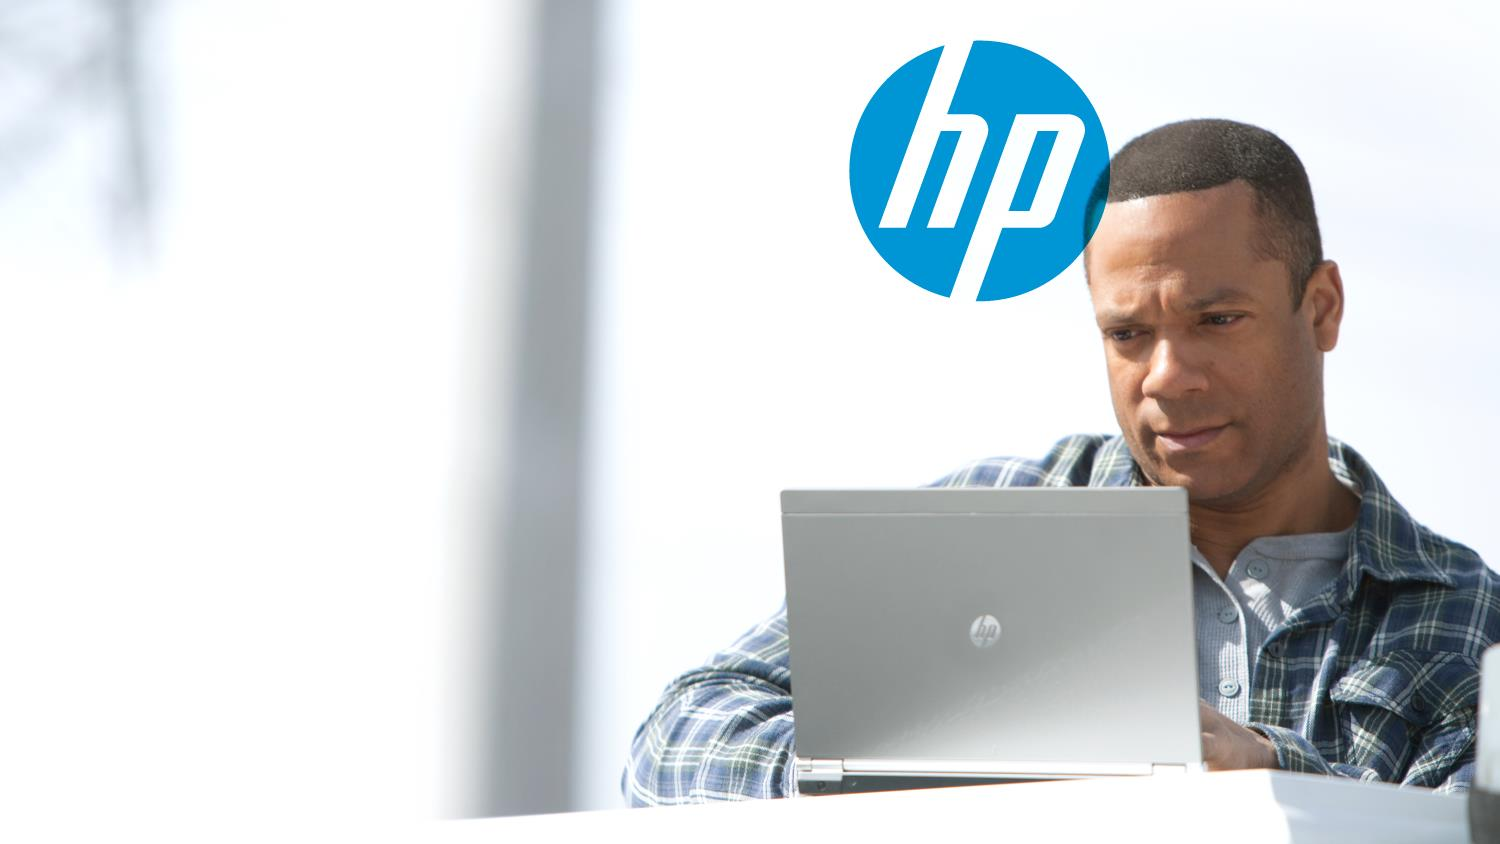 See it in action and get started now! Get more info on the Web: www.hp.